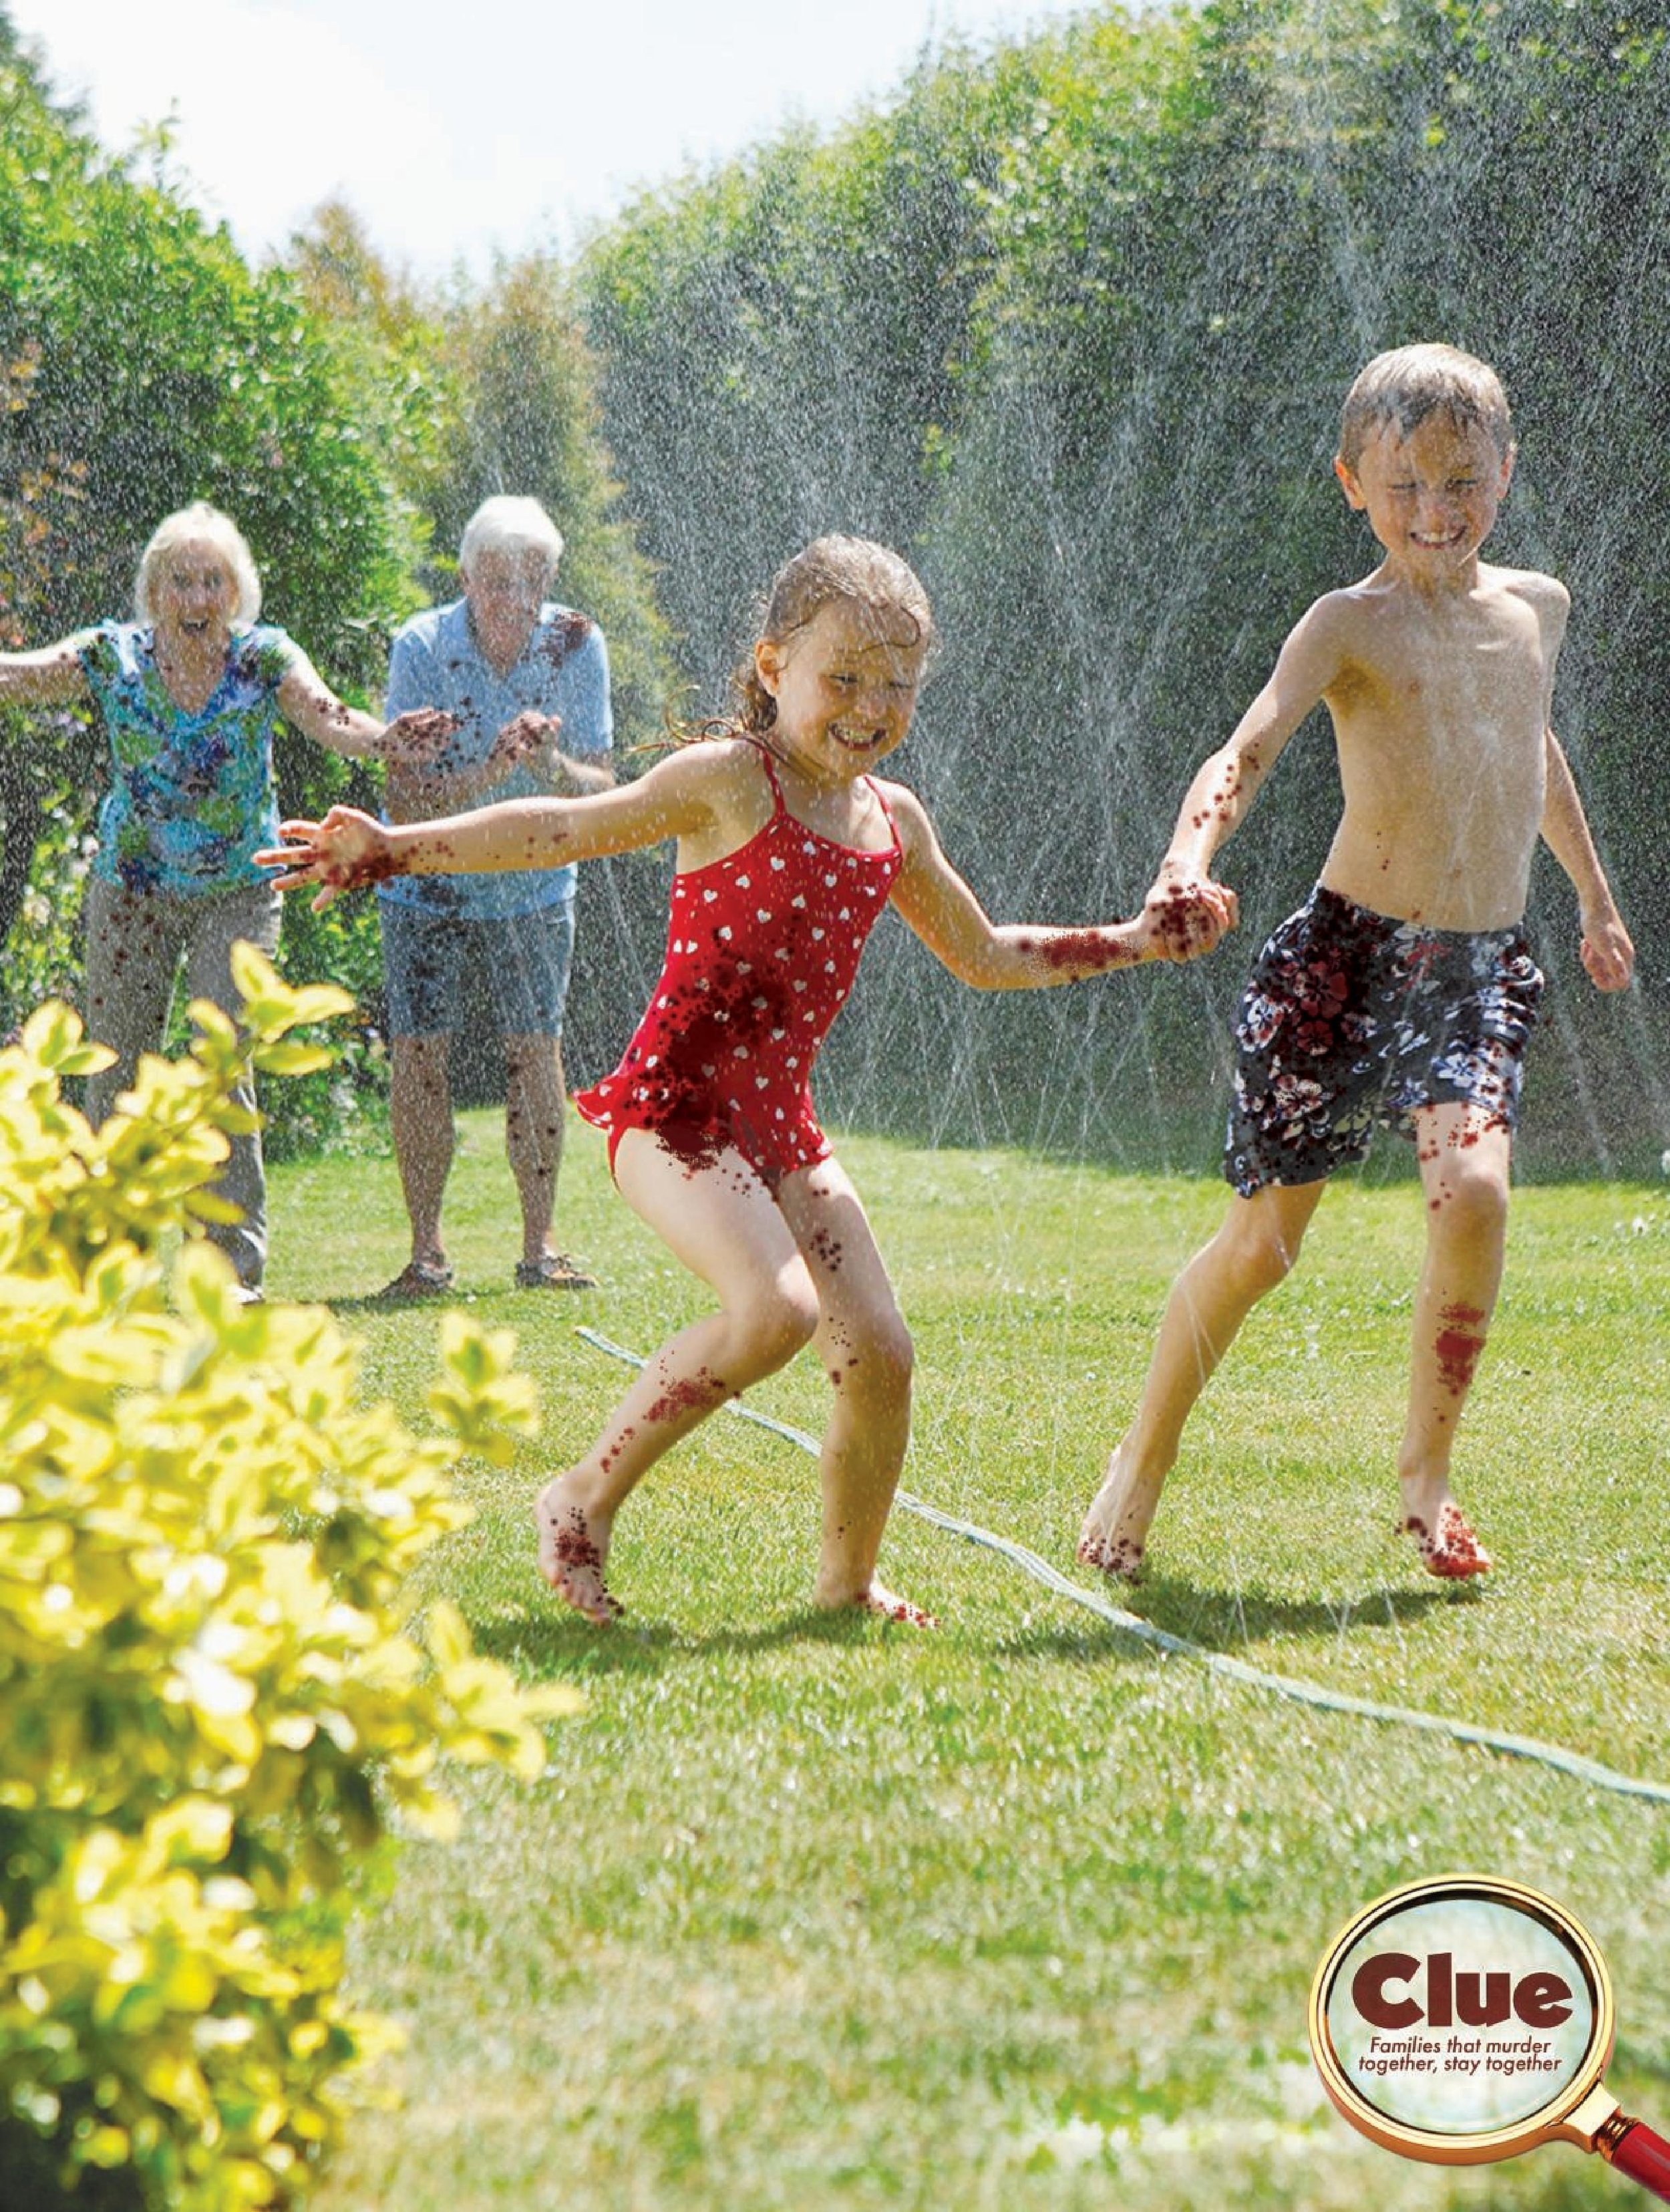 clue sprinklers copy (wecompress.com)-page-001.jpg